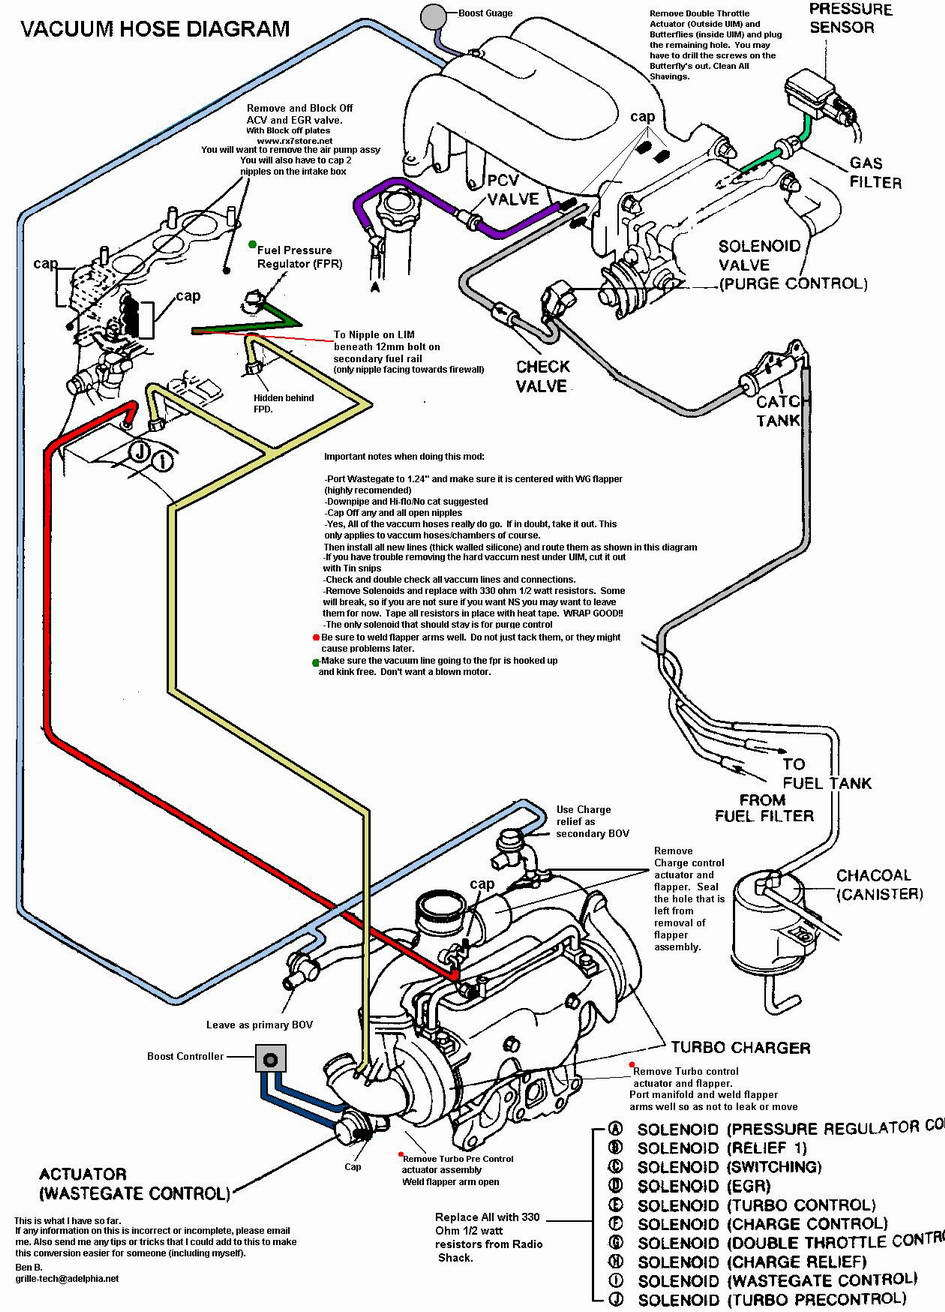 Starting Issues Mazda Rx7 Forum Gm Fuel Pressure Diagram New Filter Plugs Wires Battery Jdm Uim And Lim No Emissions As The Non Seq Removes Everything Power Fc With Base Map